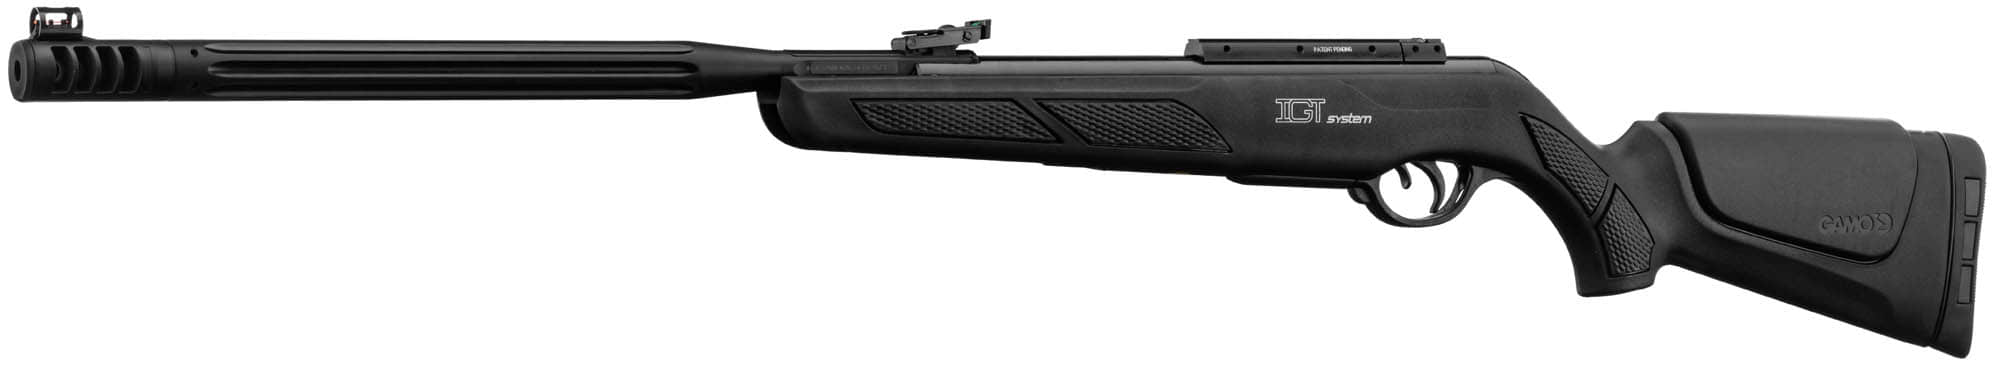 G1323-Gamo Shadow 1000 IGT Maxxim -20 Joules - G1323